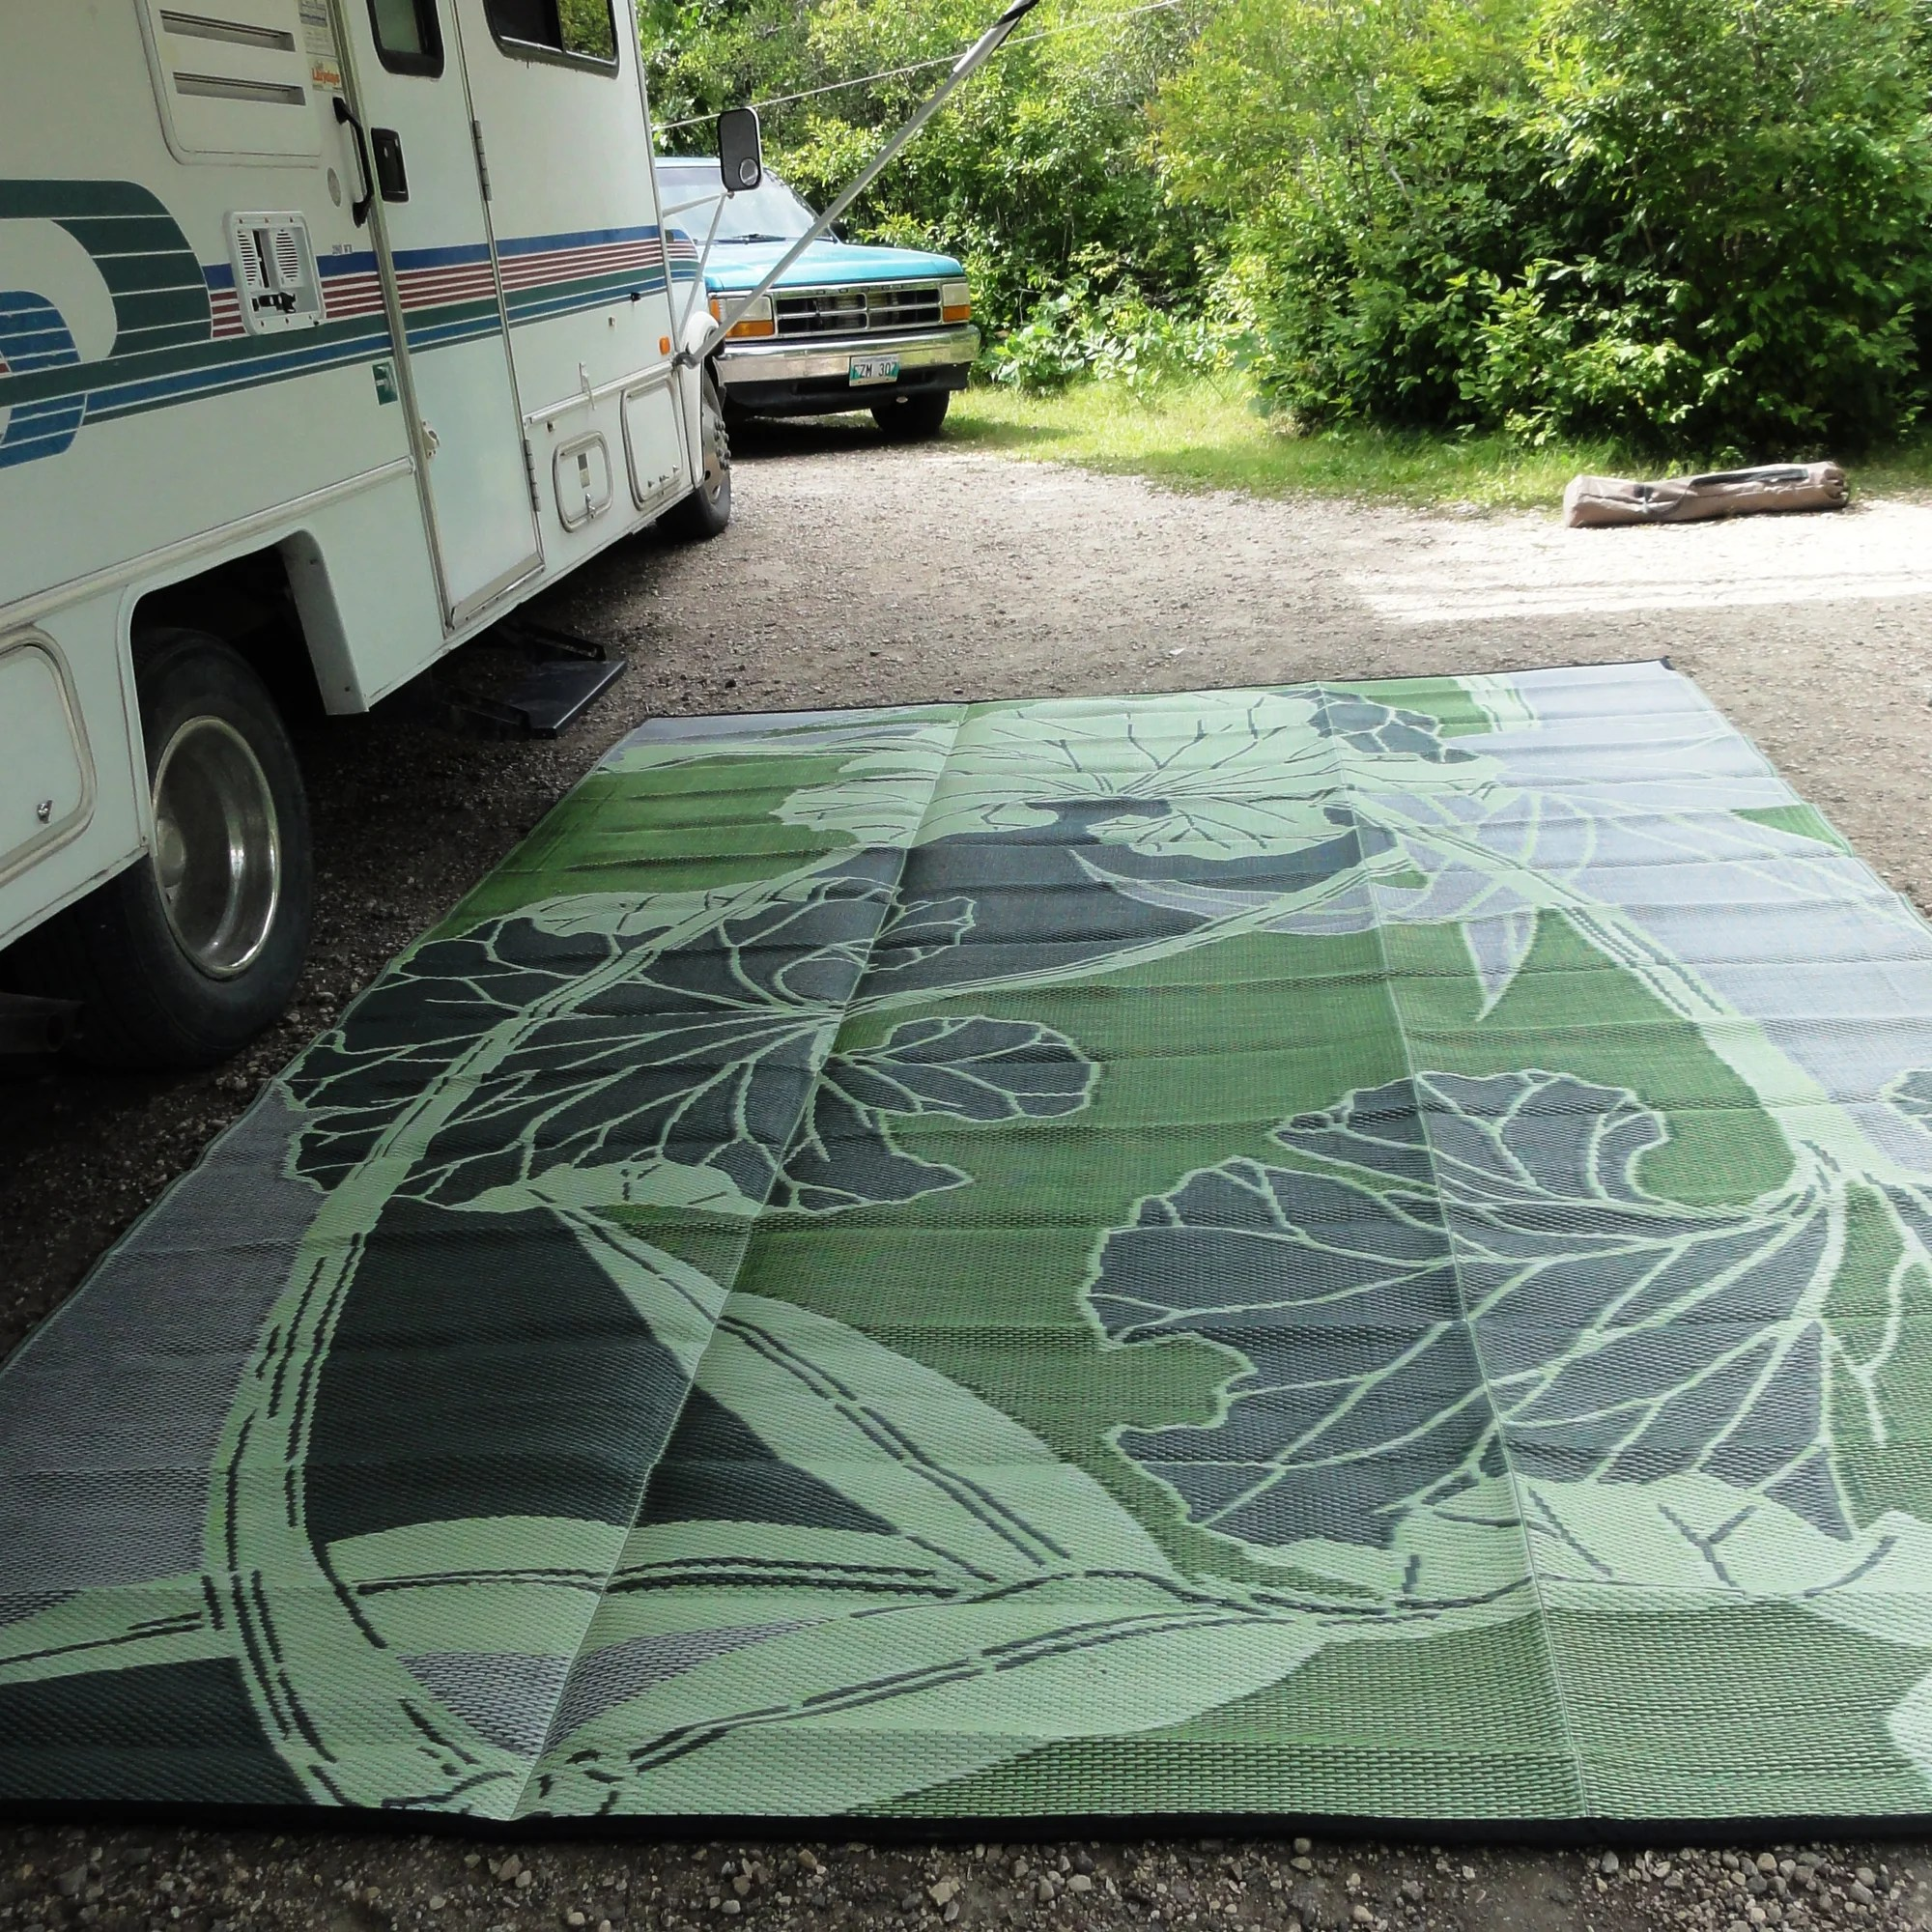 Patio Mats For Camping Home Design Ideas and